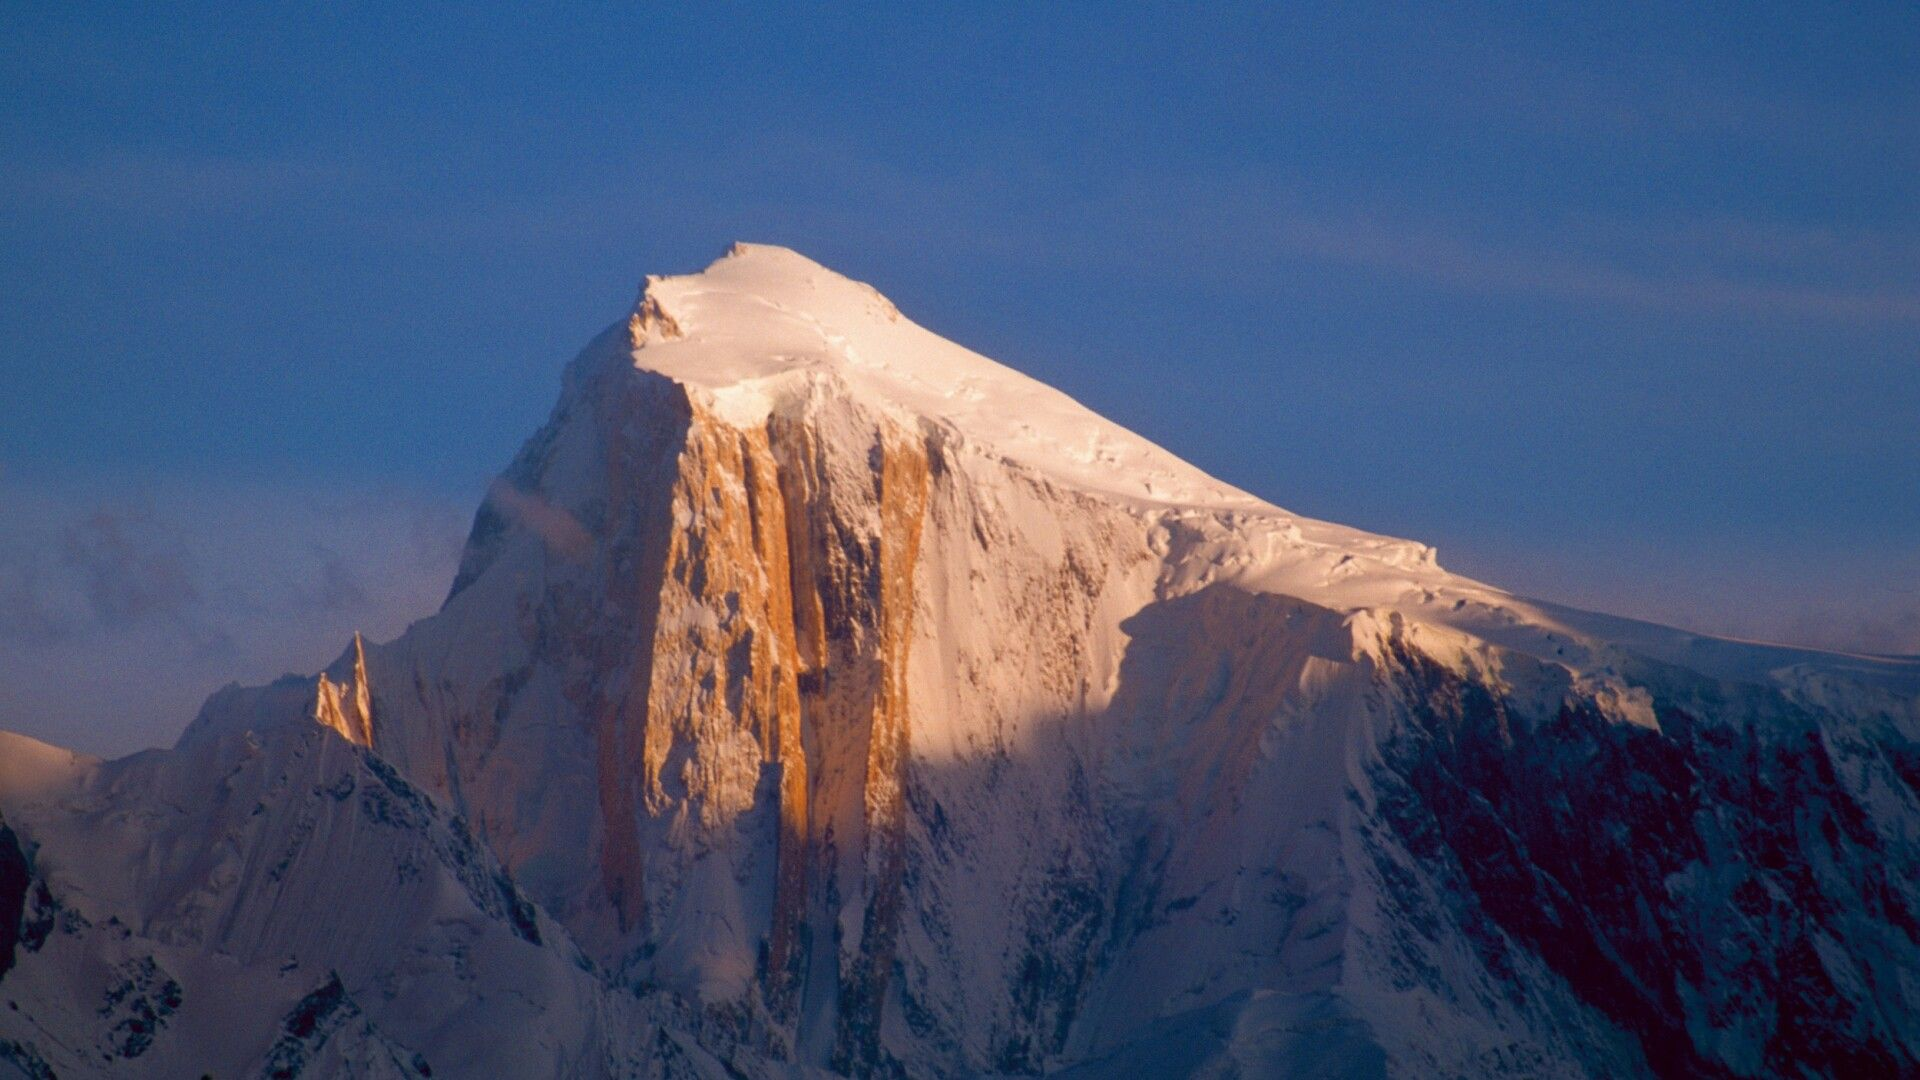 Pakistan: Expeditionsreise - Karakorum-Expedition zum Spantik (7027 m)